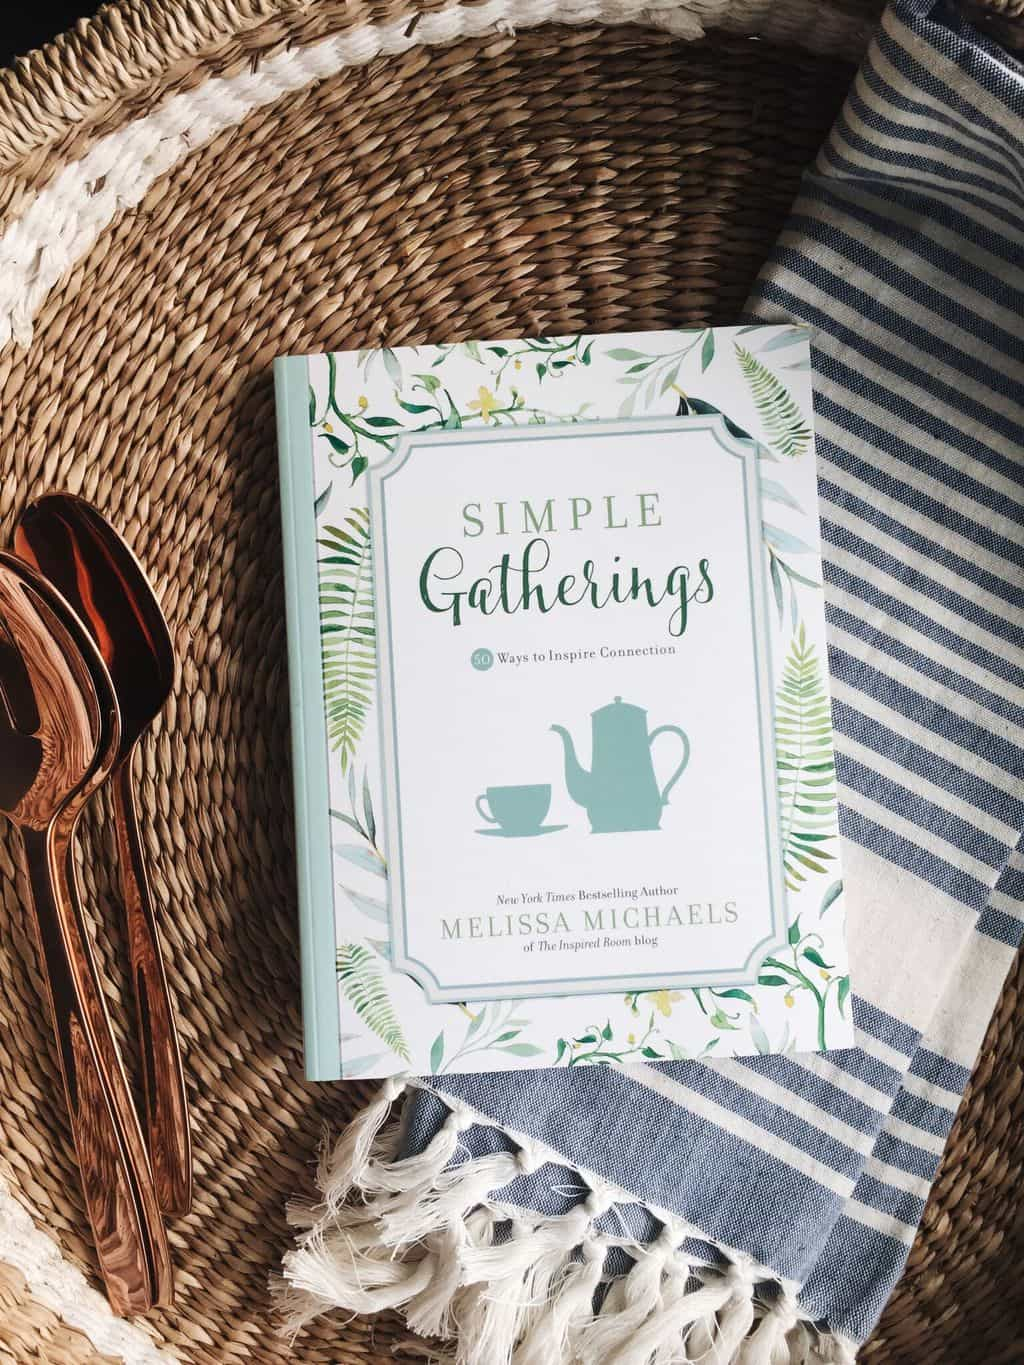 Simple Gatherings Launch Party GIVEAWAY - Reluctant Entertainer